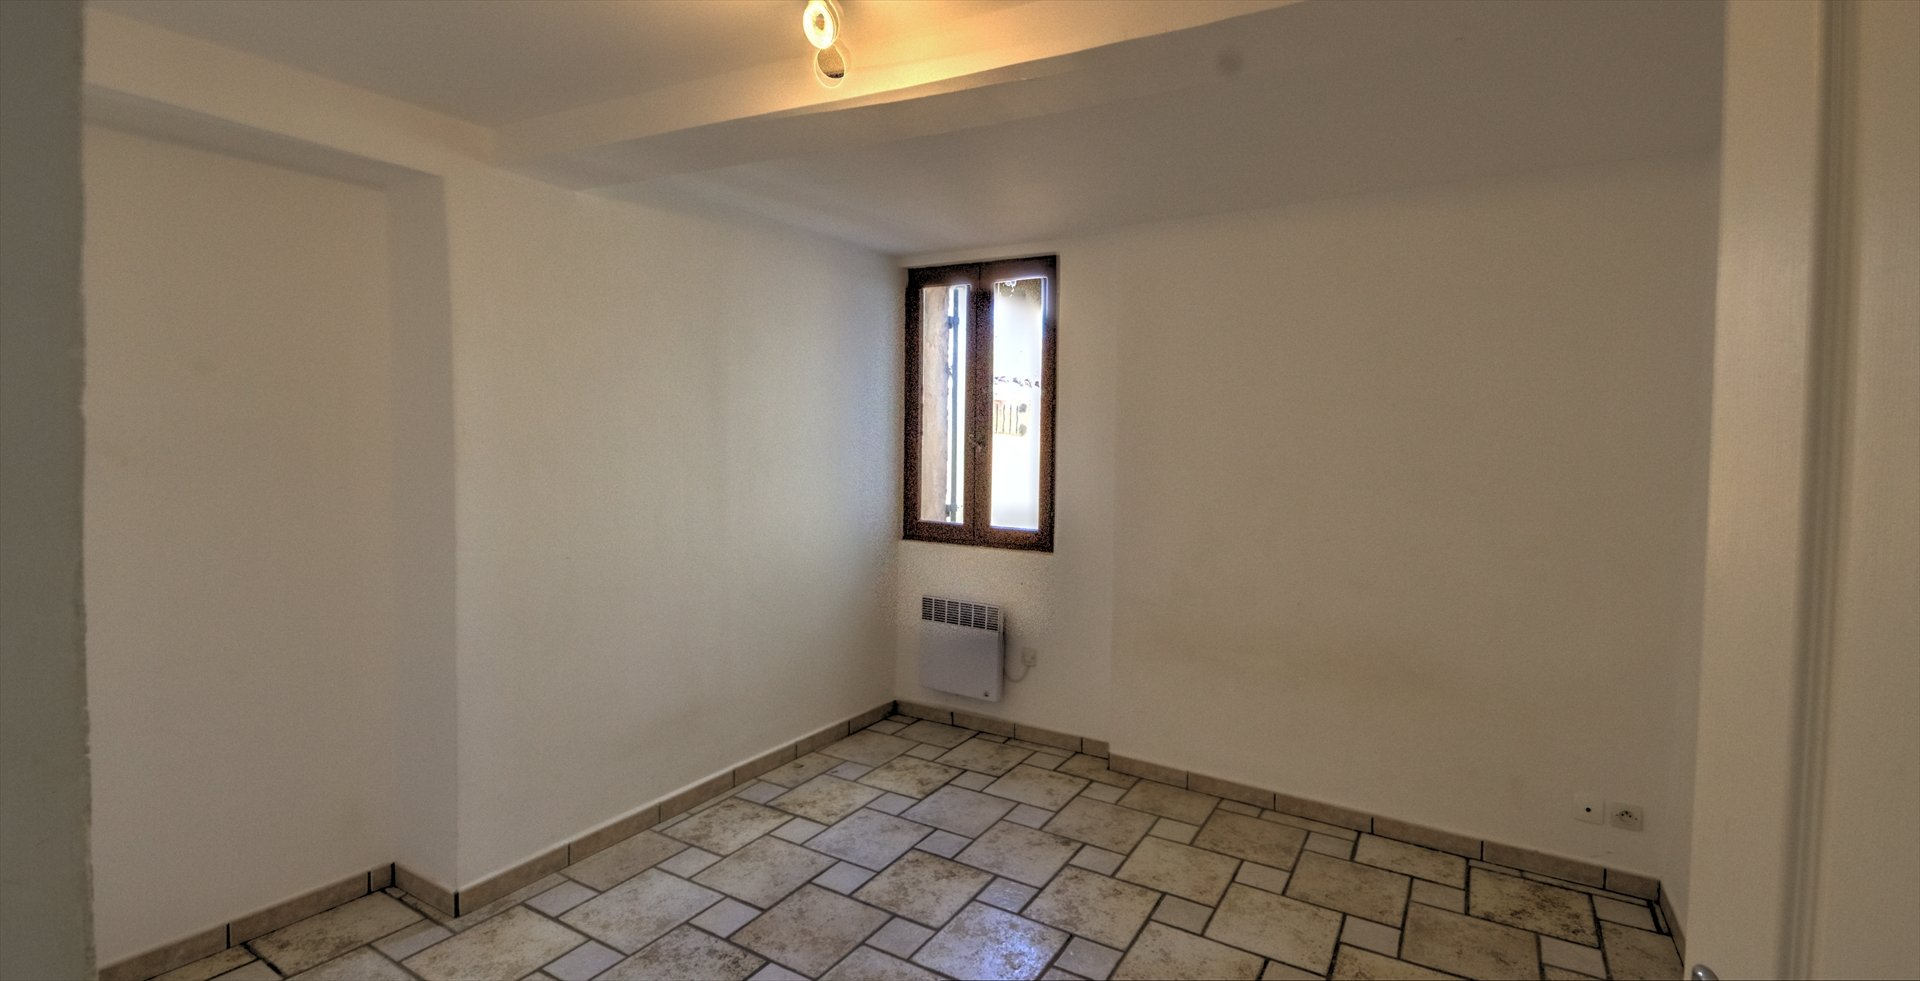 Near Lorgues, beautiful apartment with garage